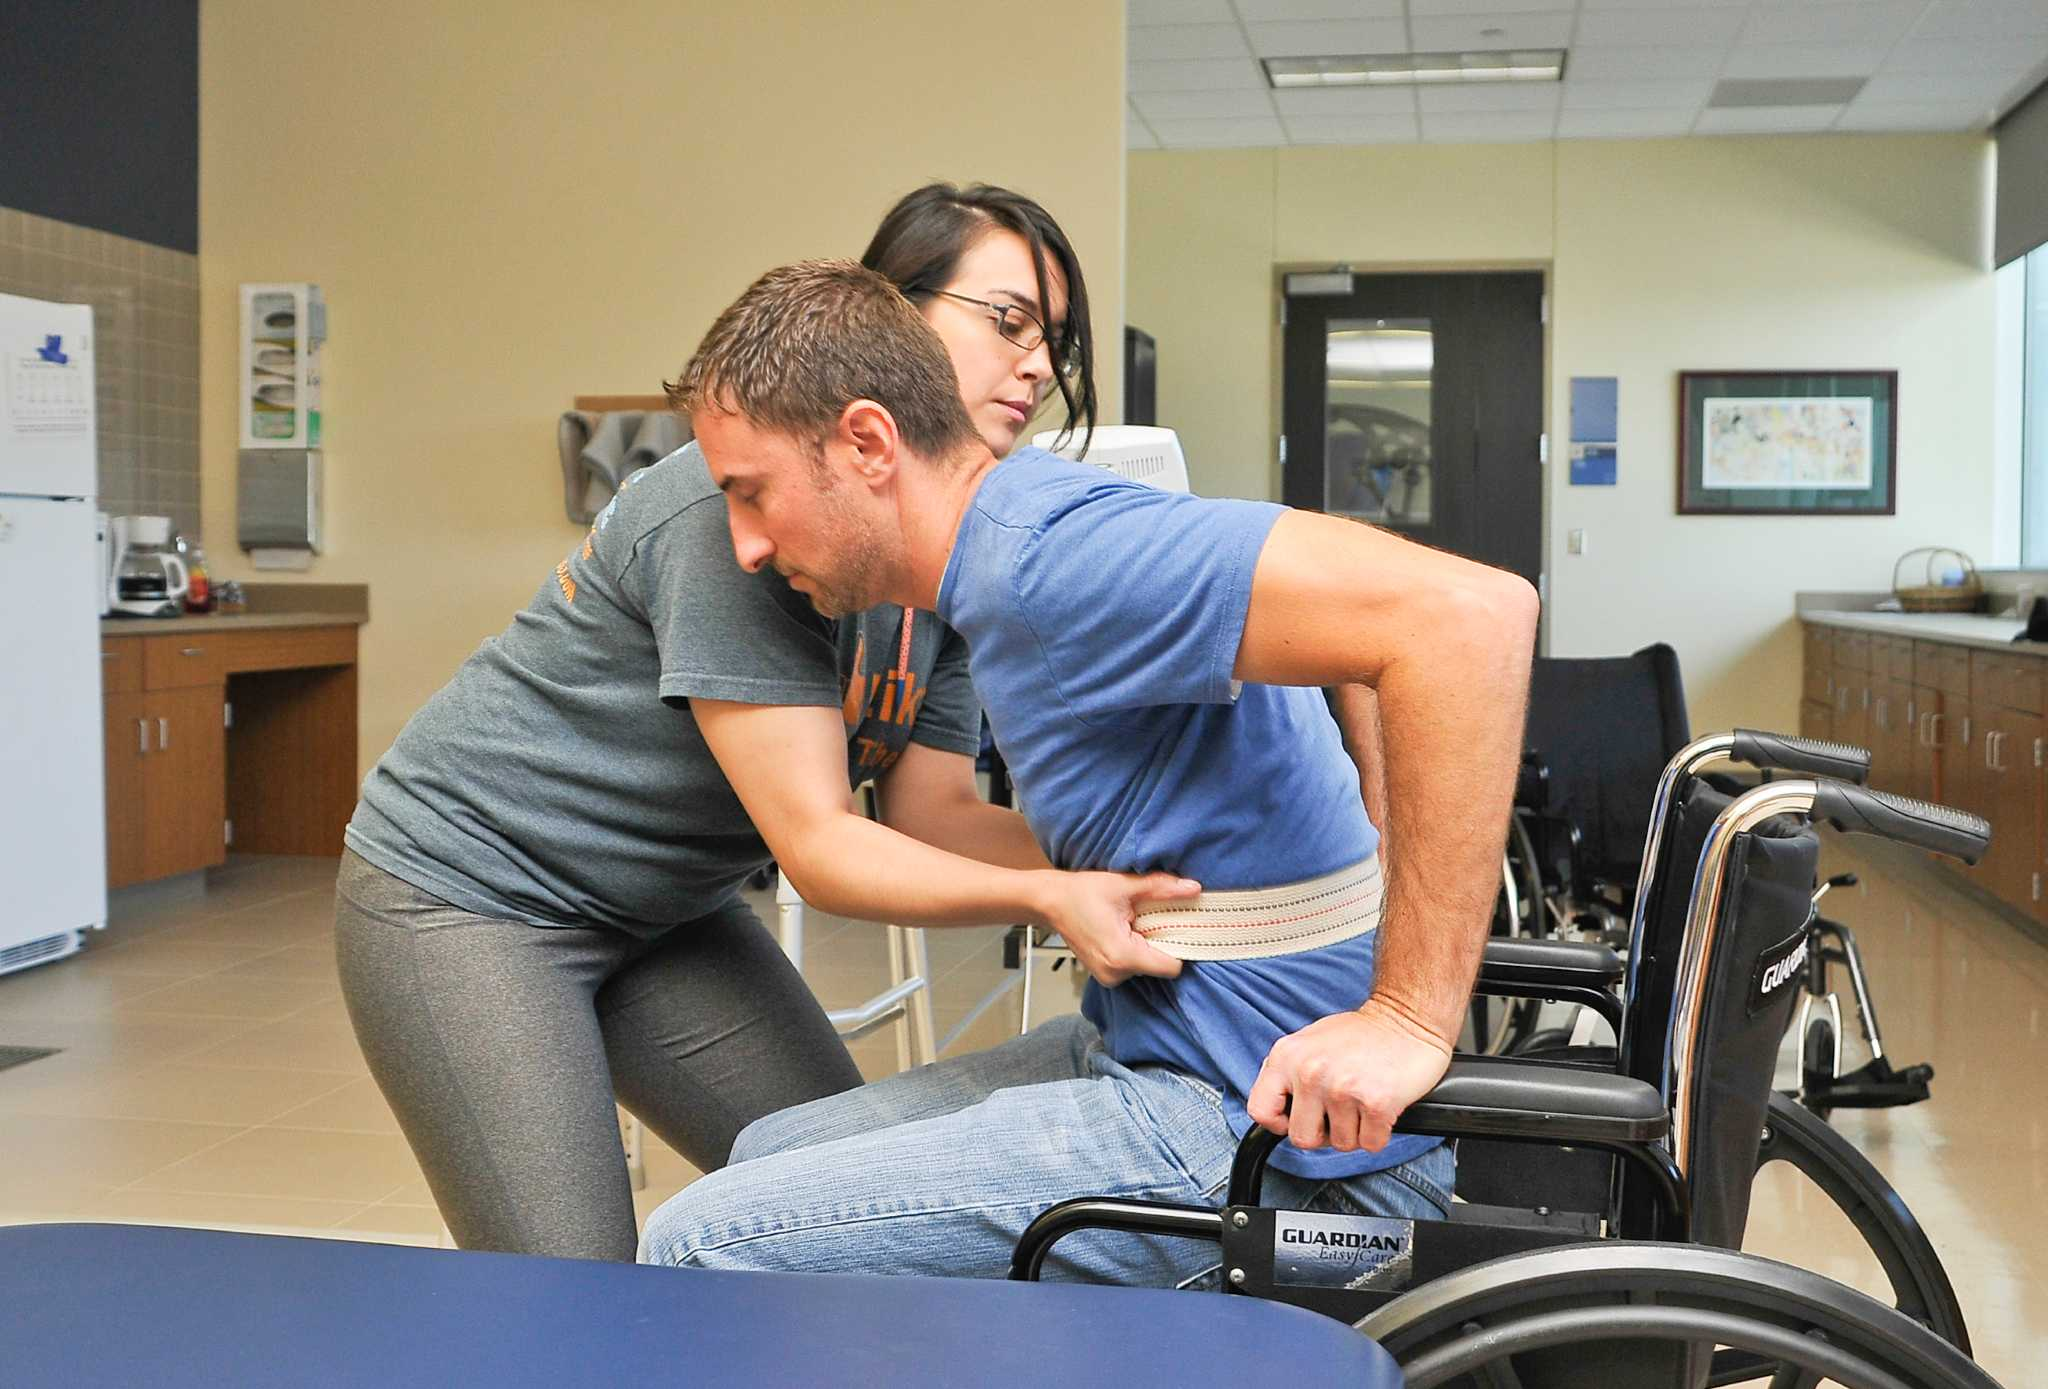 12566 physical therapy aide jobs available on indeed take steps toward working penn foster career school com can be completed as little 1 month one - Physical Therapist Aide Salary